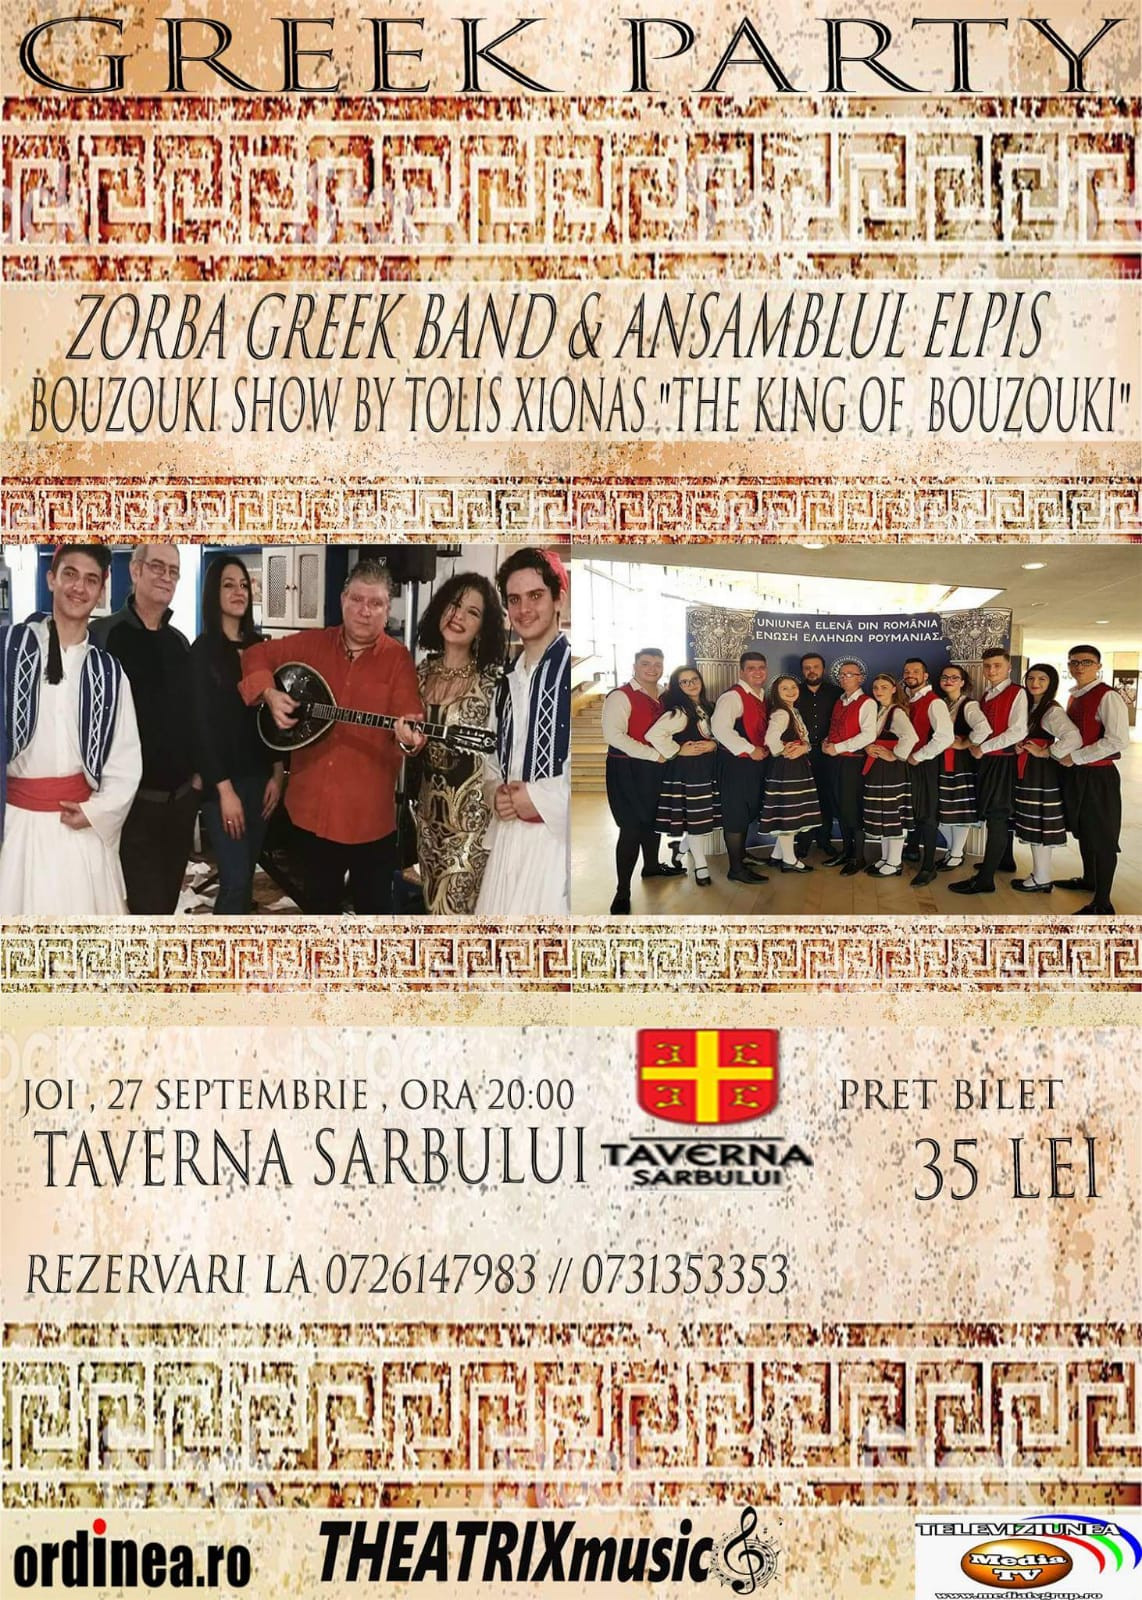 Greek Party la Taverna Sarbului